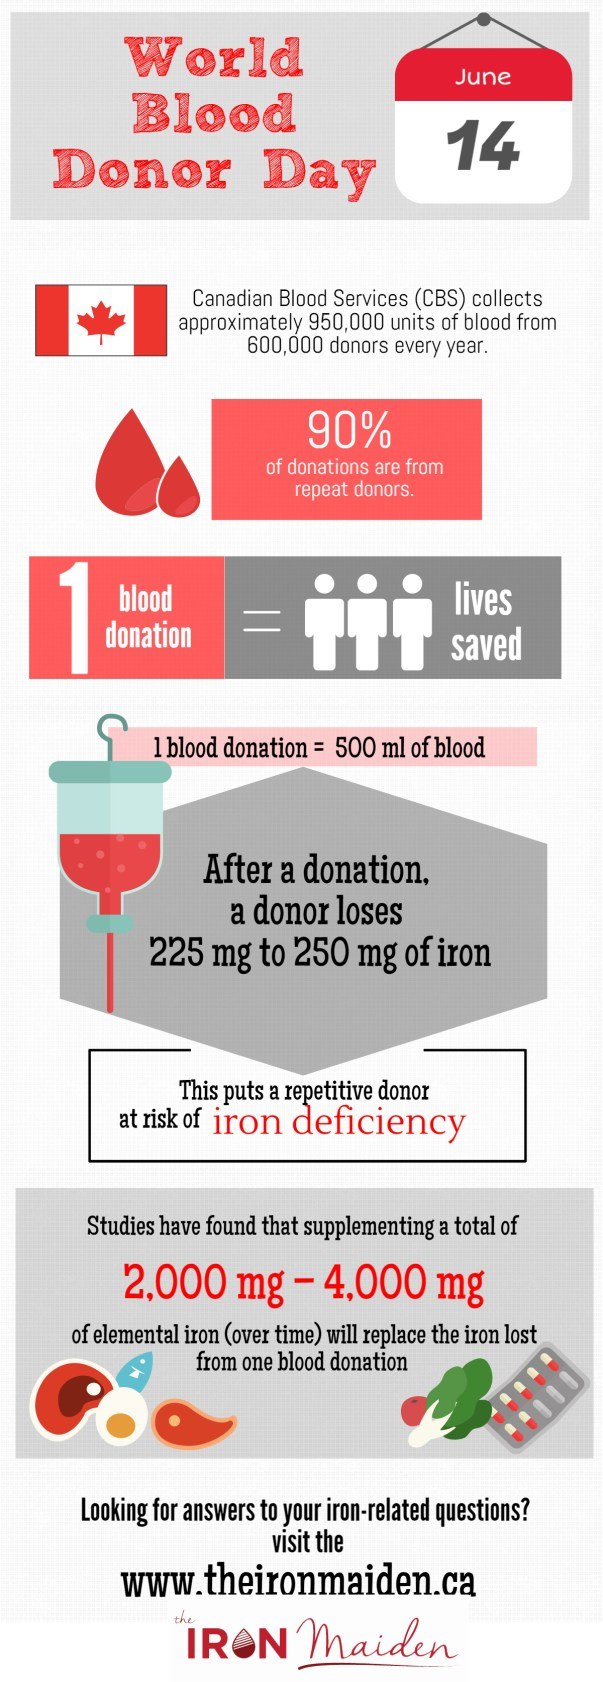 Blood Donation Day June 14 (IronMaiden Website)